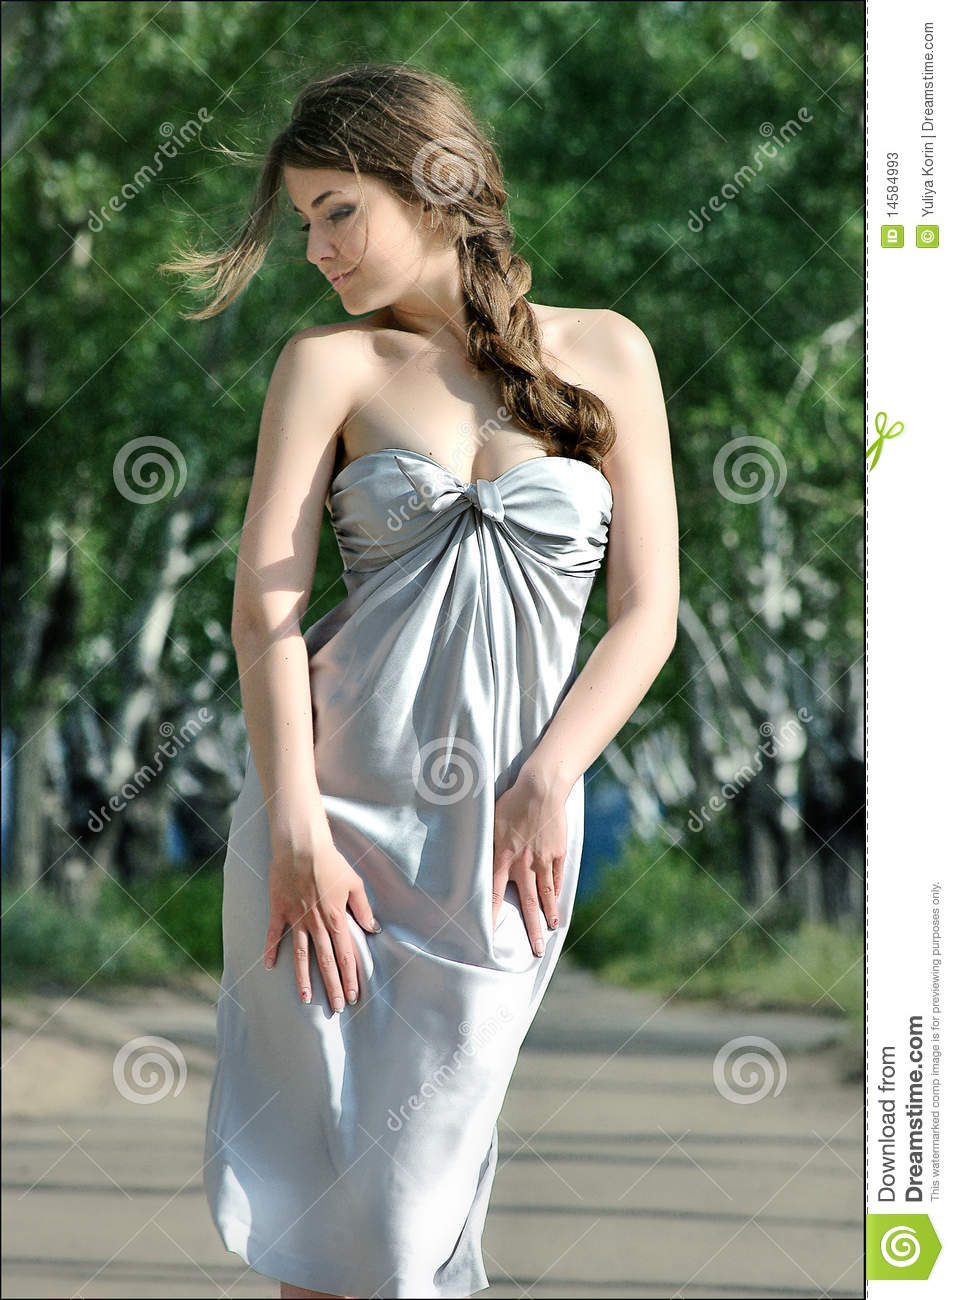 Beautiful Shy Girl With A Braid Of Hair Stock Image Image Of Female Fantasy 14584993